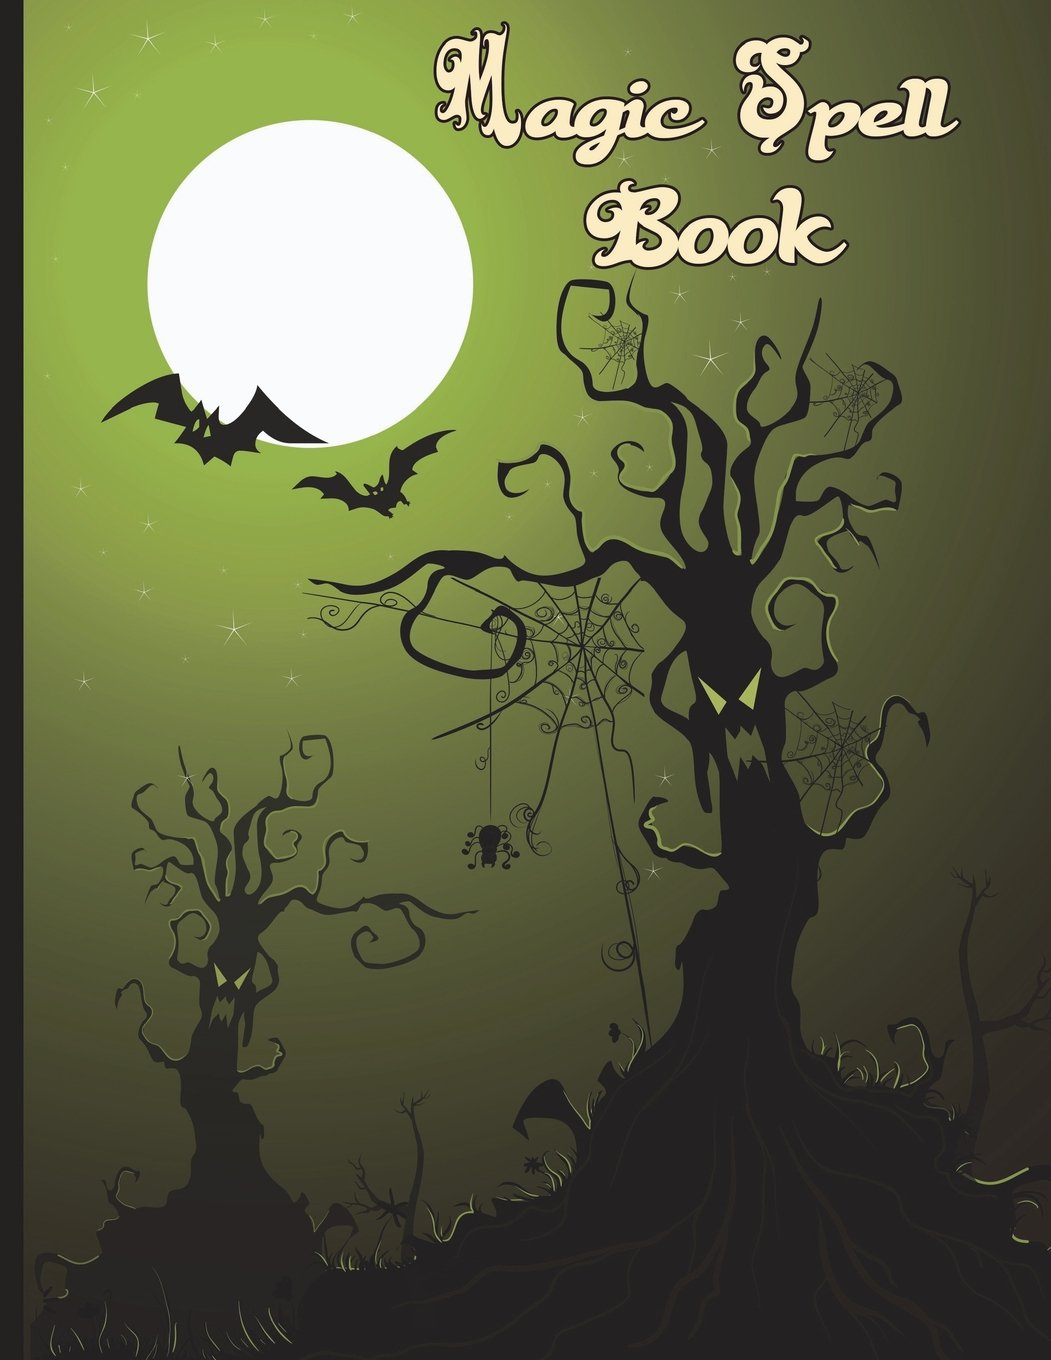 Download Magic Spell Book: Book of Shadows Grimoire 90 Blank Attractive Spells Records Paperback Notebook Journal 8.5 X 11 Magic Gift Spell Book Spooky Tree Bats Full Moon Cover PDF Text fb2 ebook